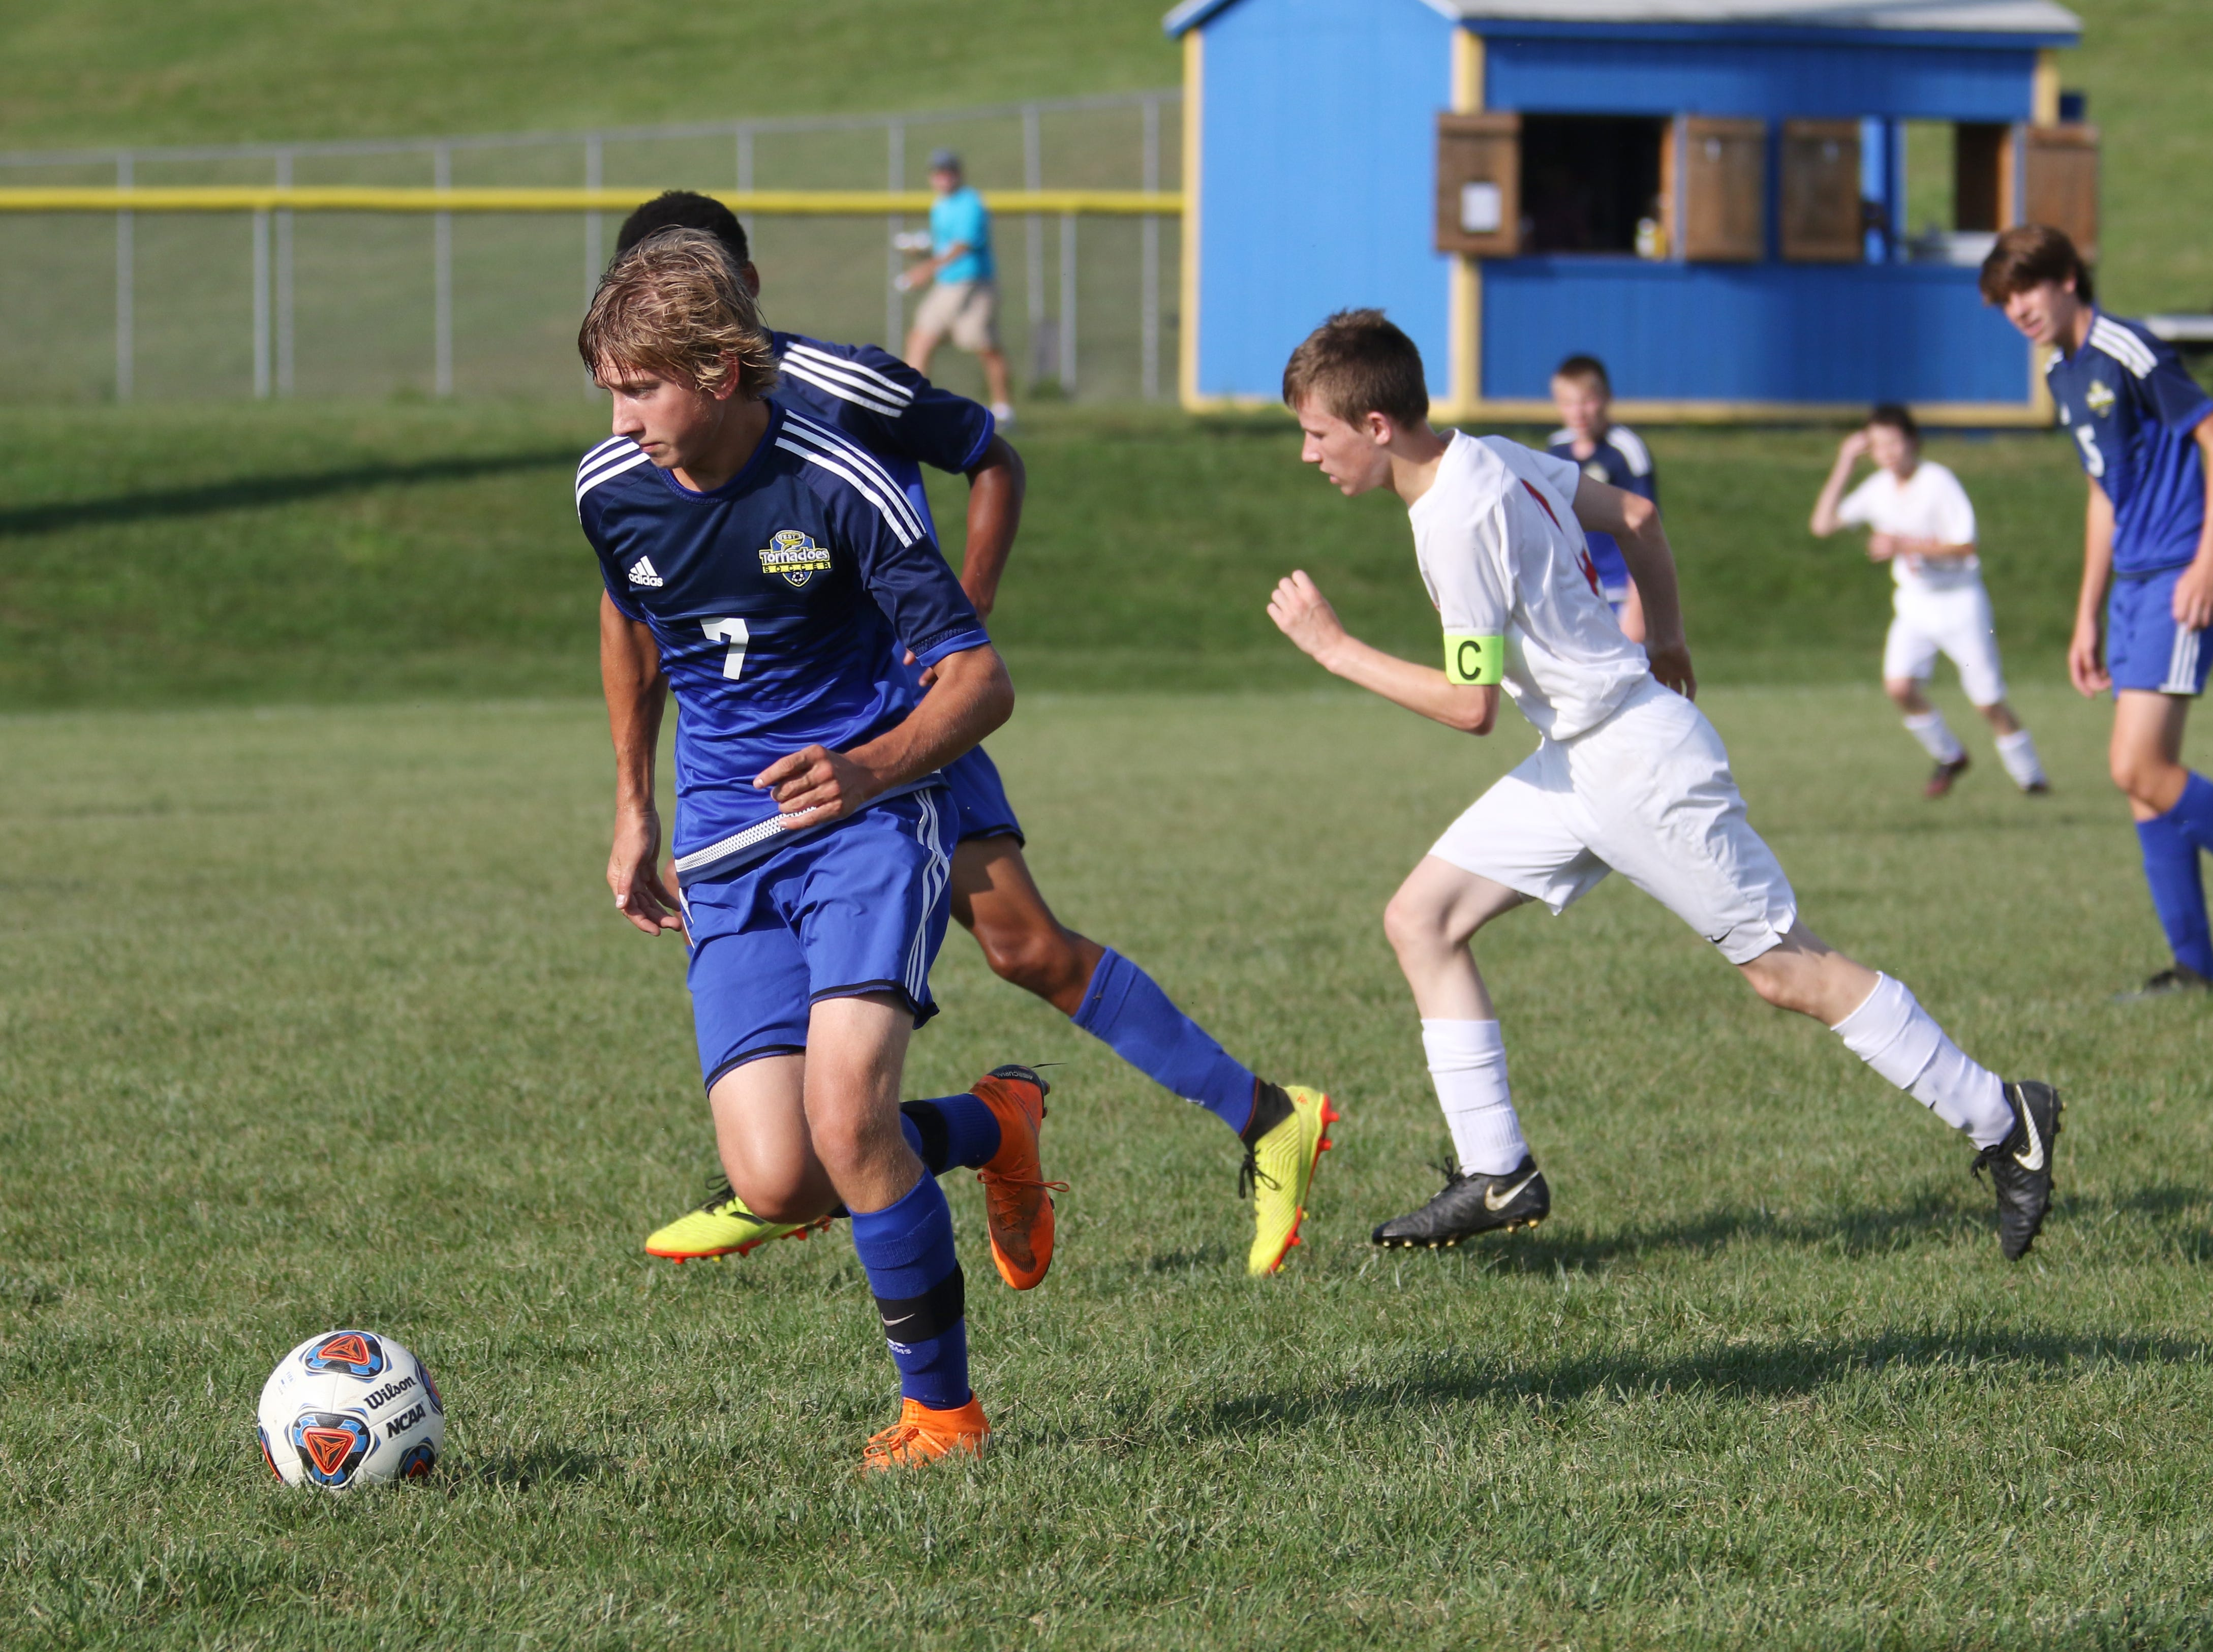 West Muskingum's Cayden Porter moves with the ball against Sheridan.